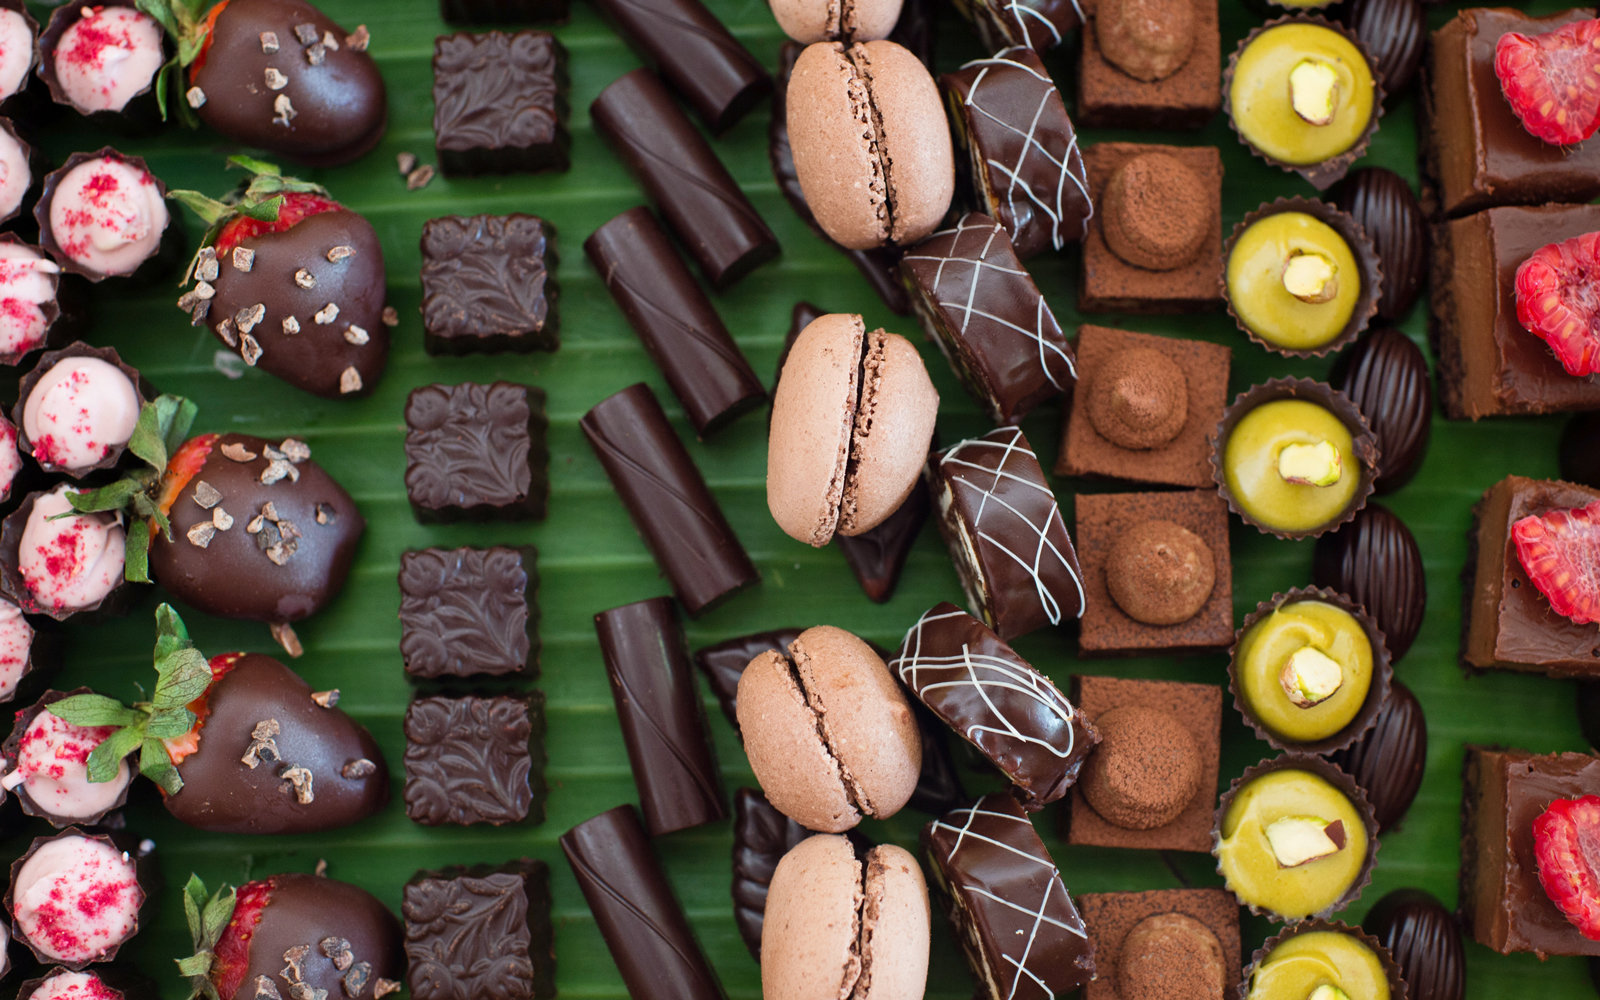 Hotels for Chocolate Lovers